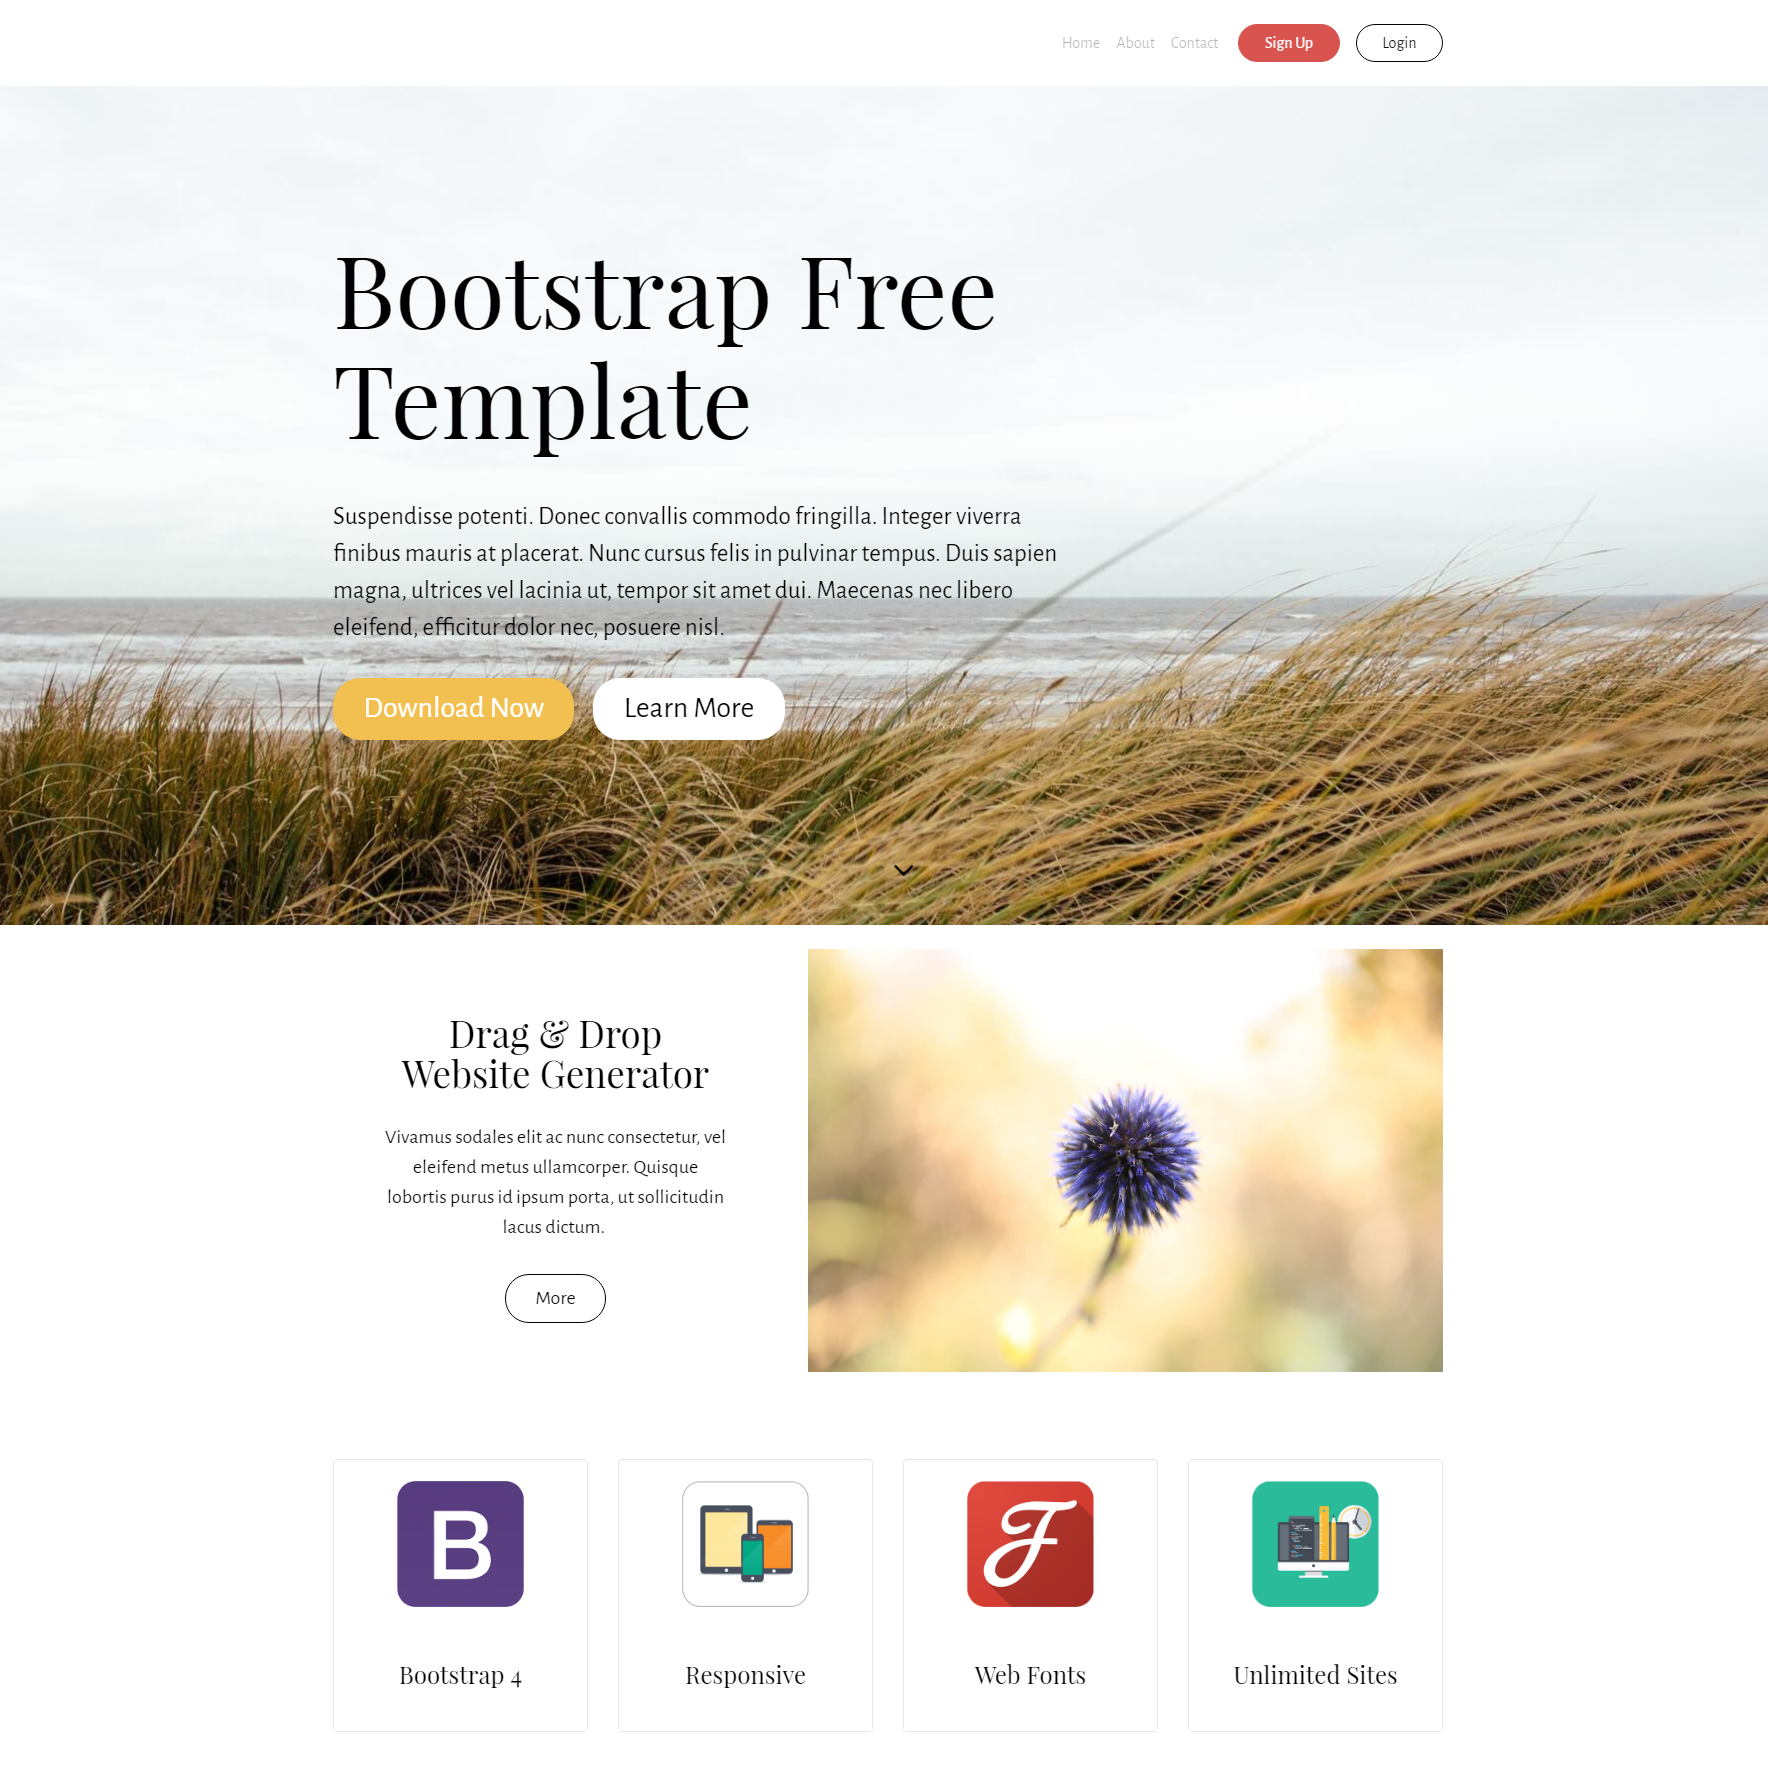 Responsive Bootstrap Free Templates